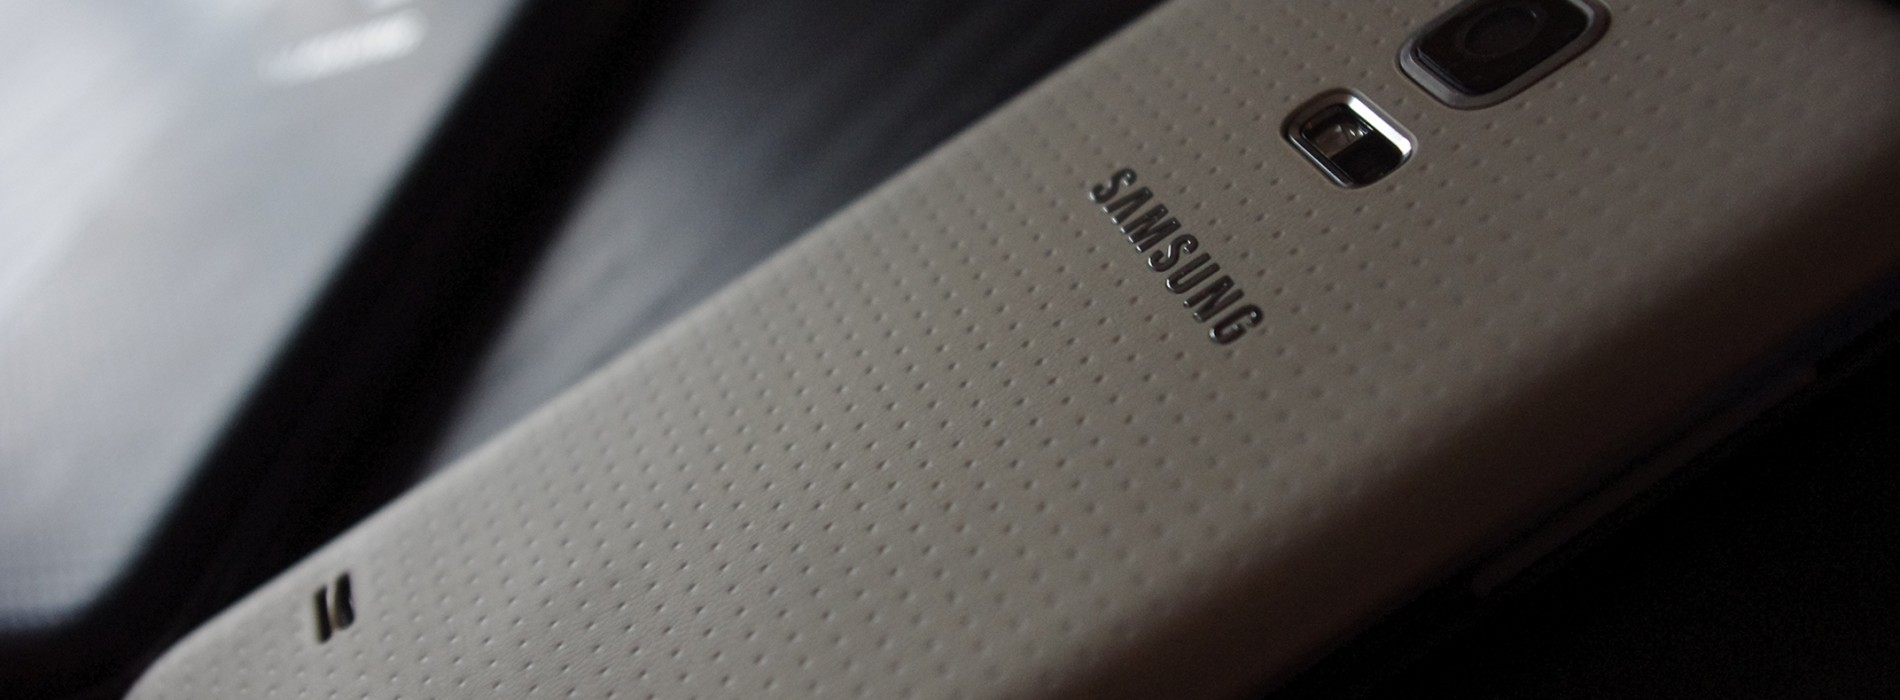 Galaxy S5 Mini images and specs leak